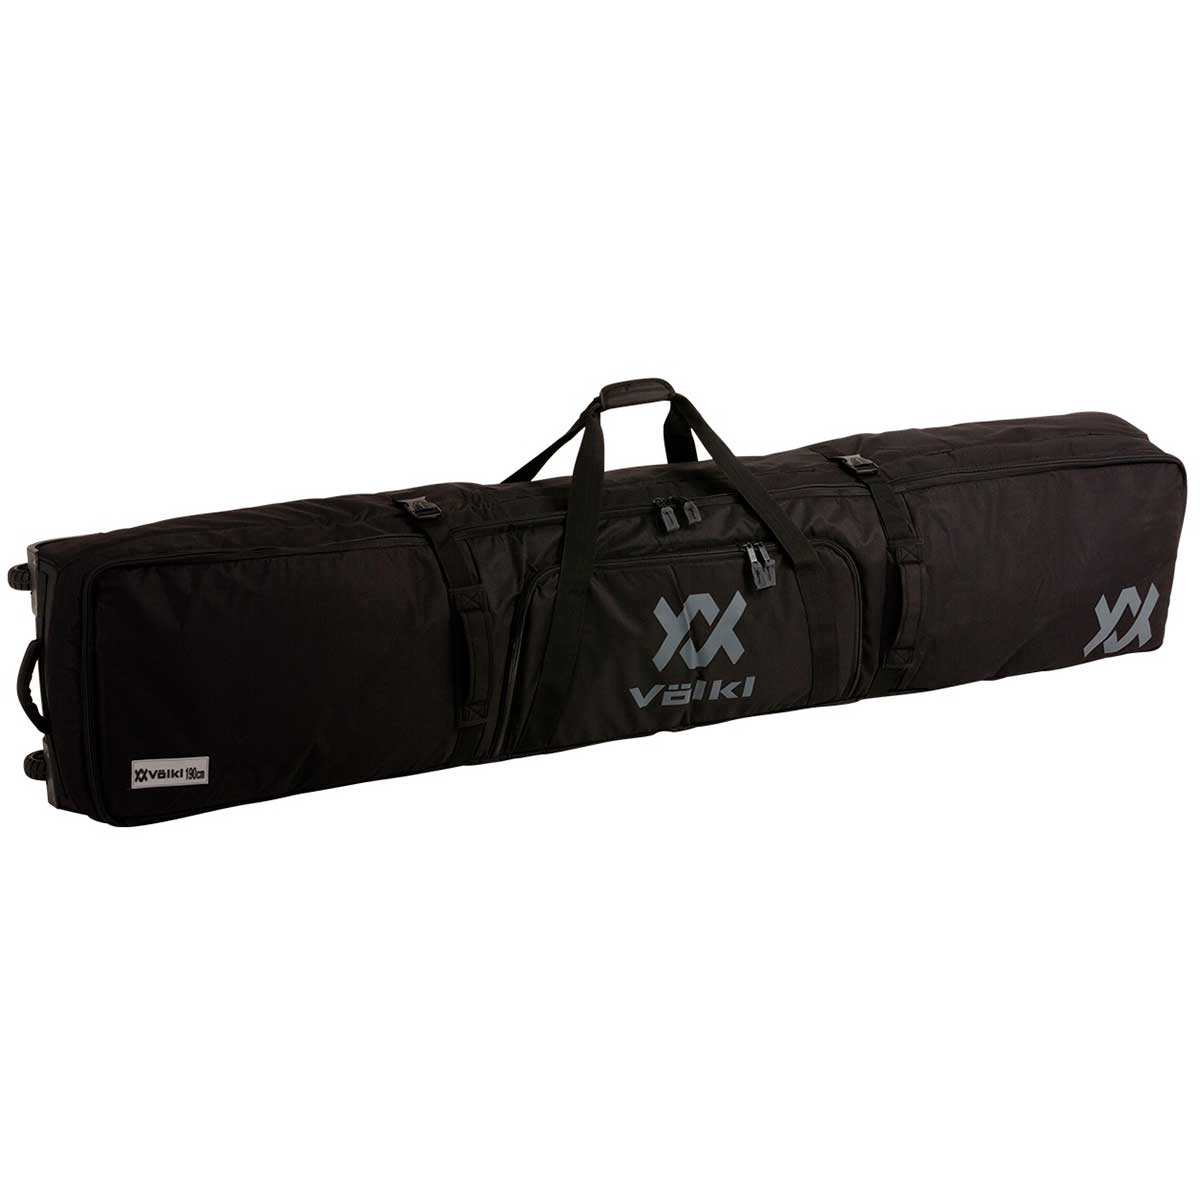 Volkl All Pro Gear Bag in black